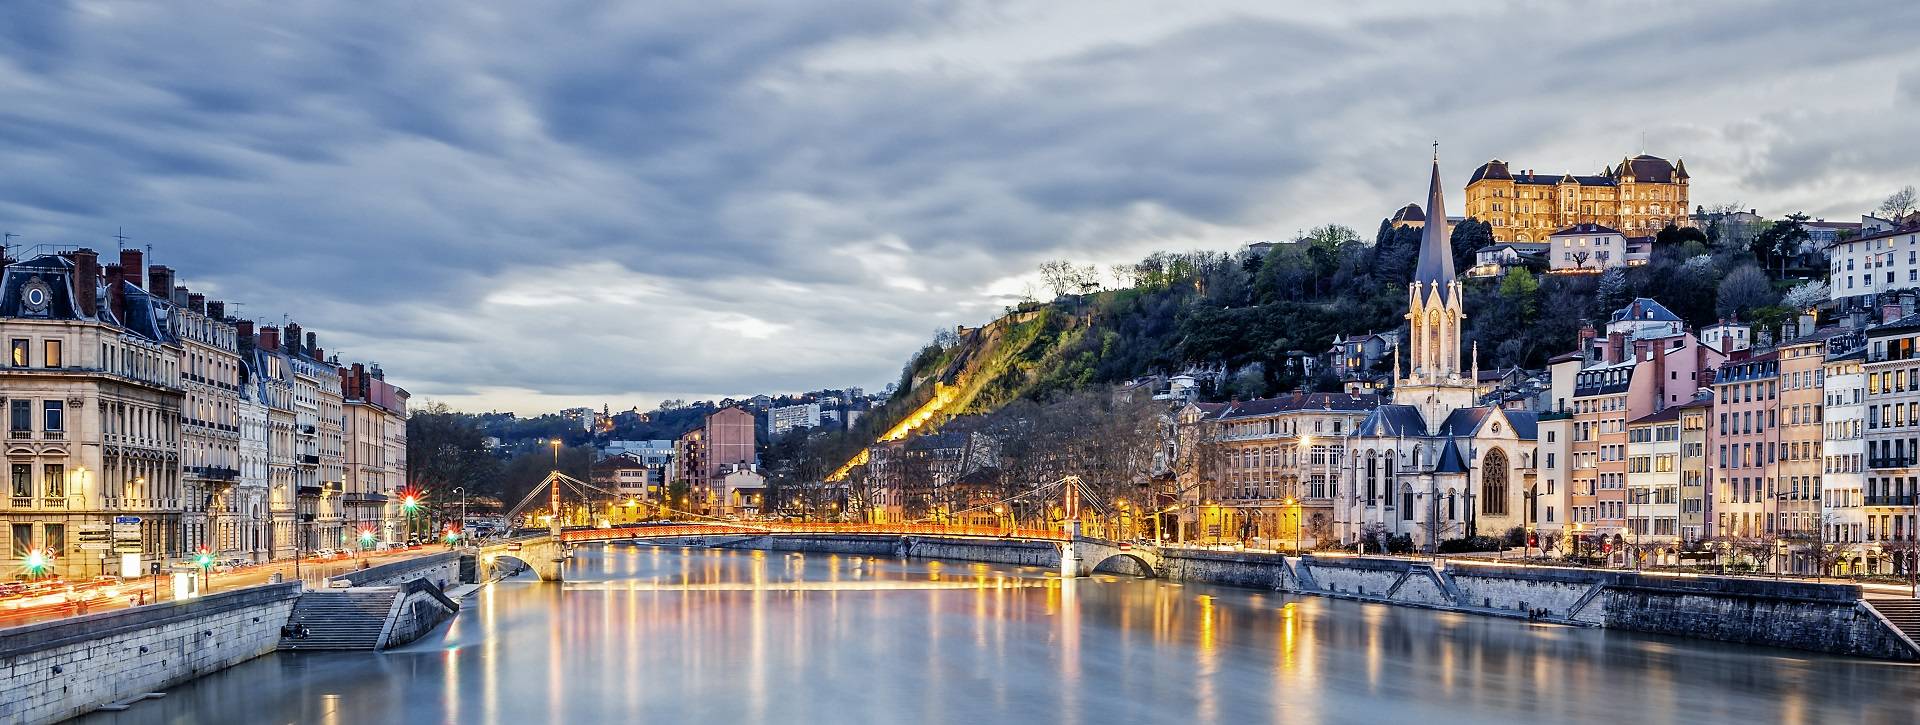 Rhone River Valley Cruise with Chateau Montelena